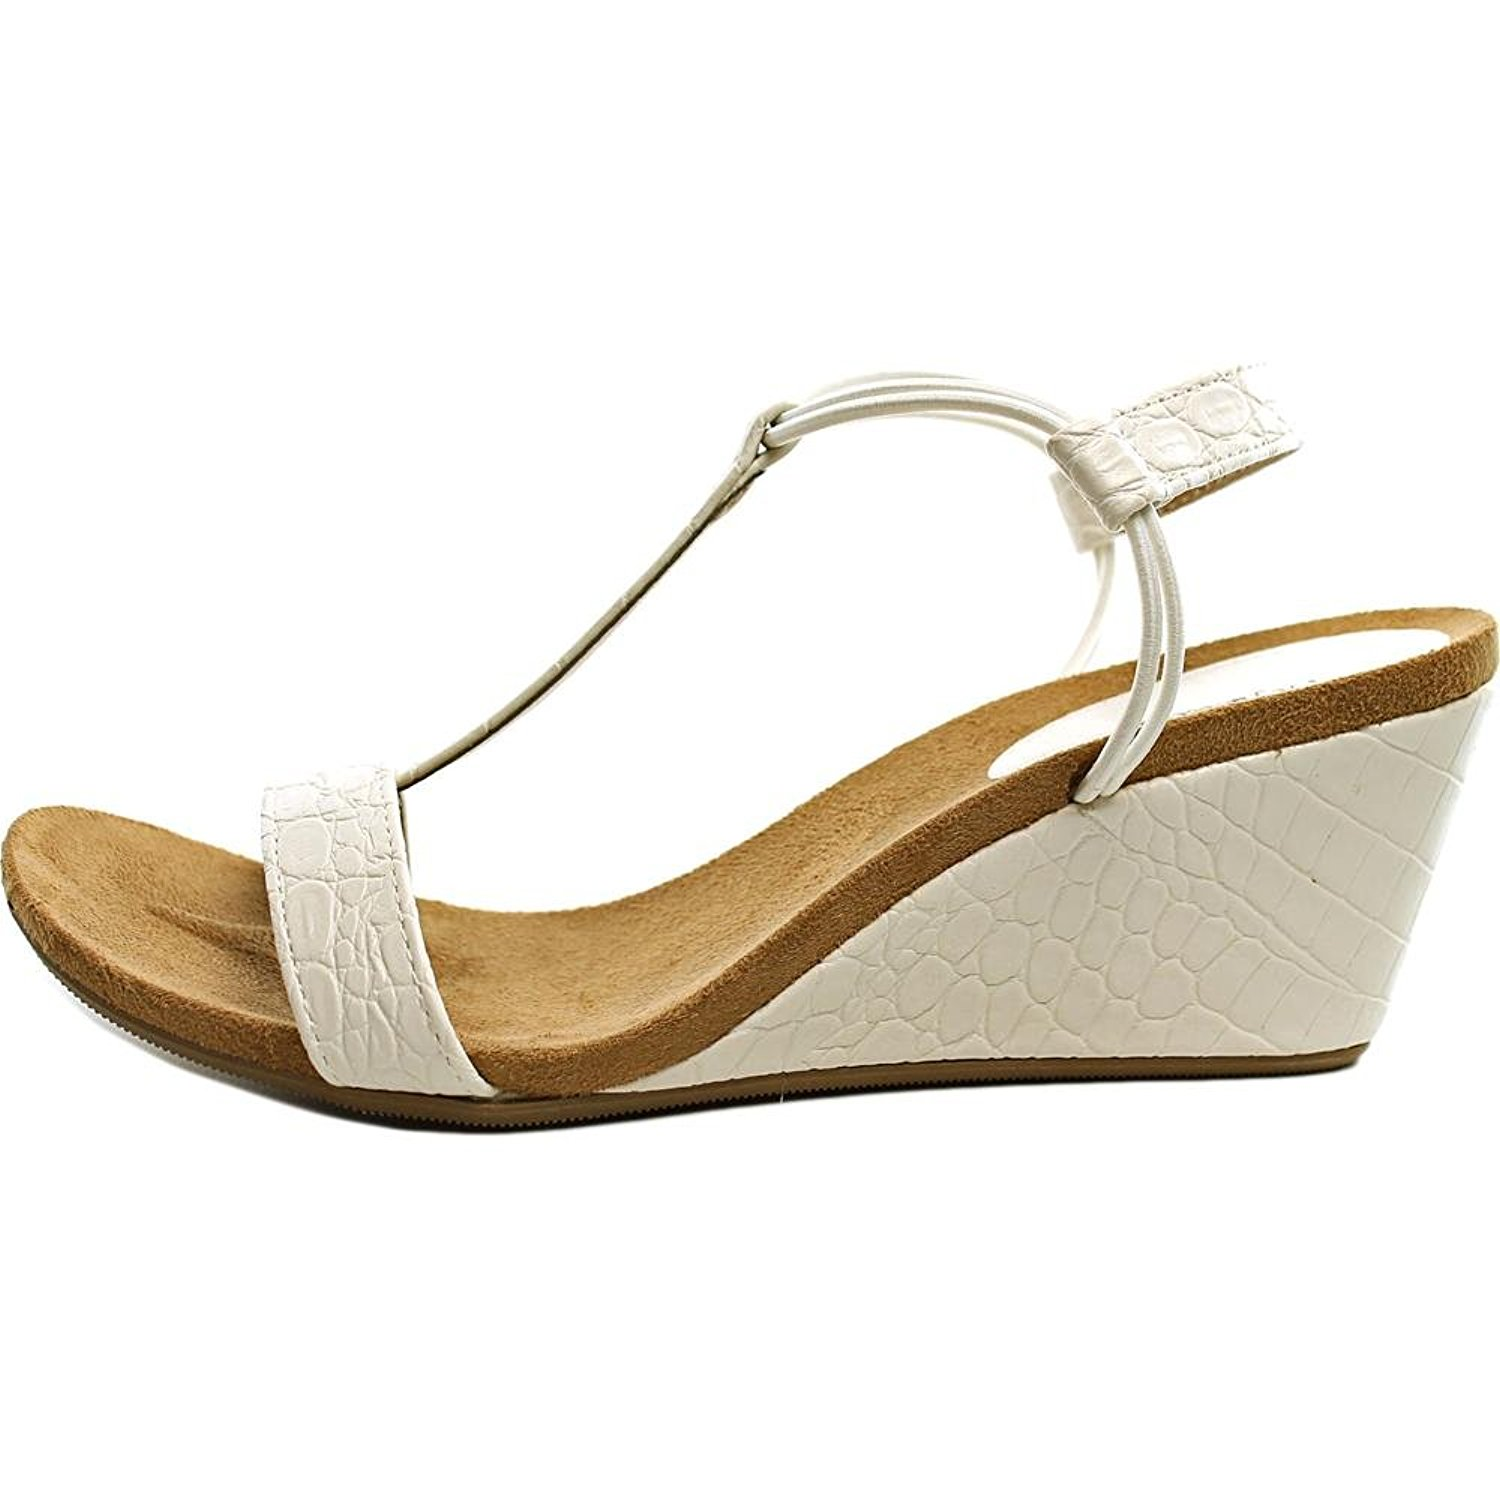 Style Co Womens Mulan Open Toe Casual Platform Sandals White Snake Size 90